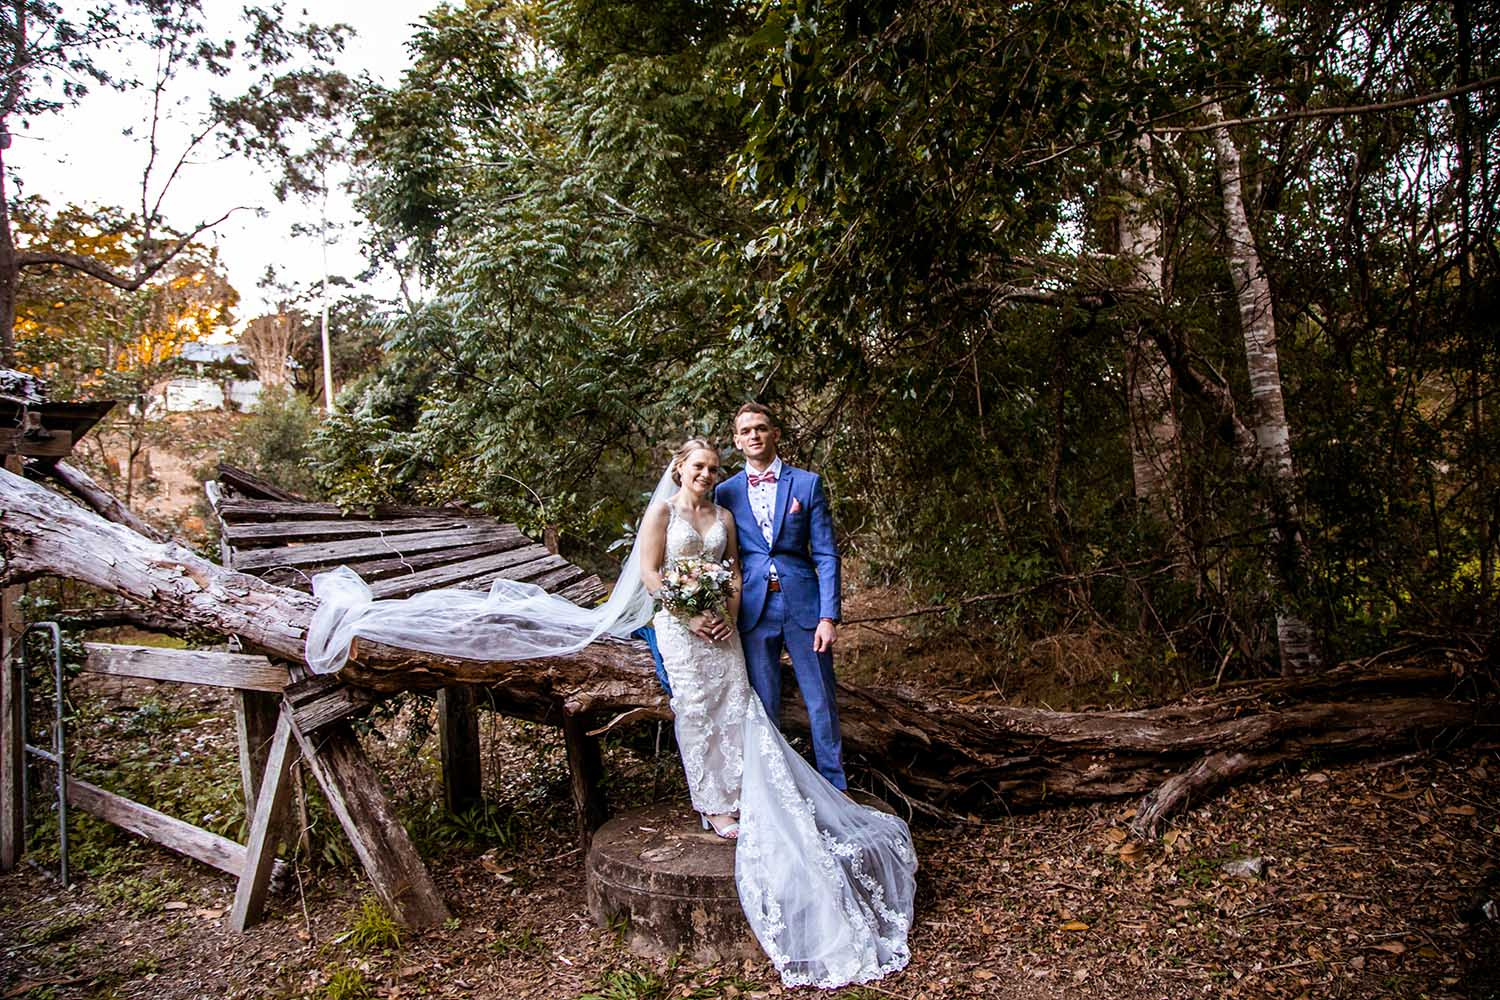 Wedding Photography - Bride and Groom outside